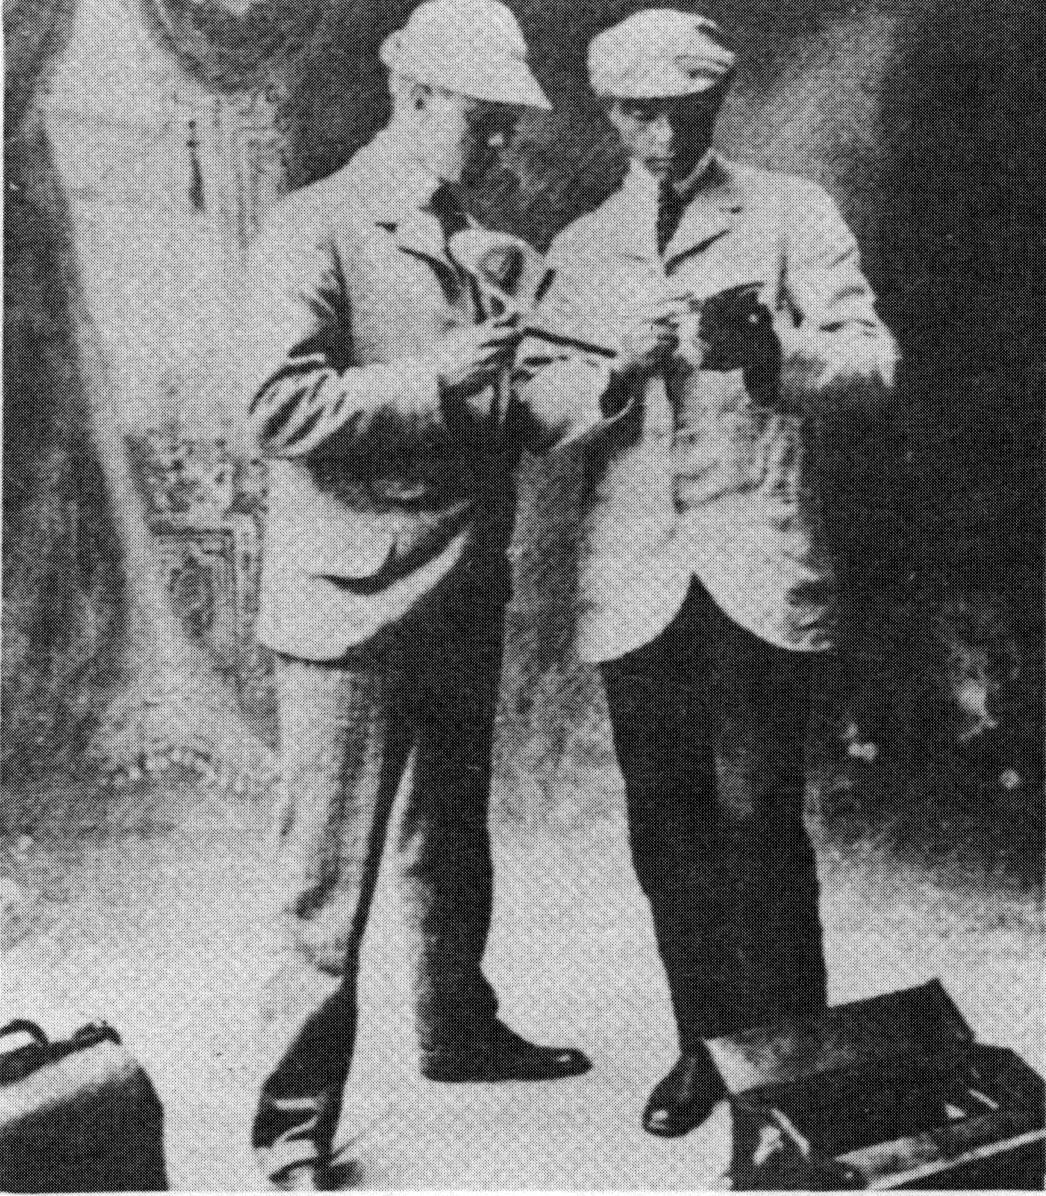 Sandburg and his sales partner, Frederick Dickinson (at left) pose with one of their stereoscope and cards.